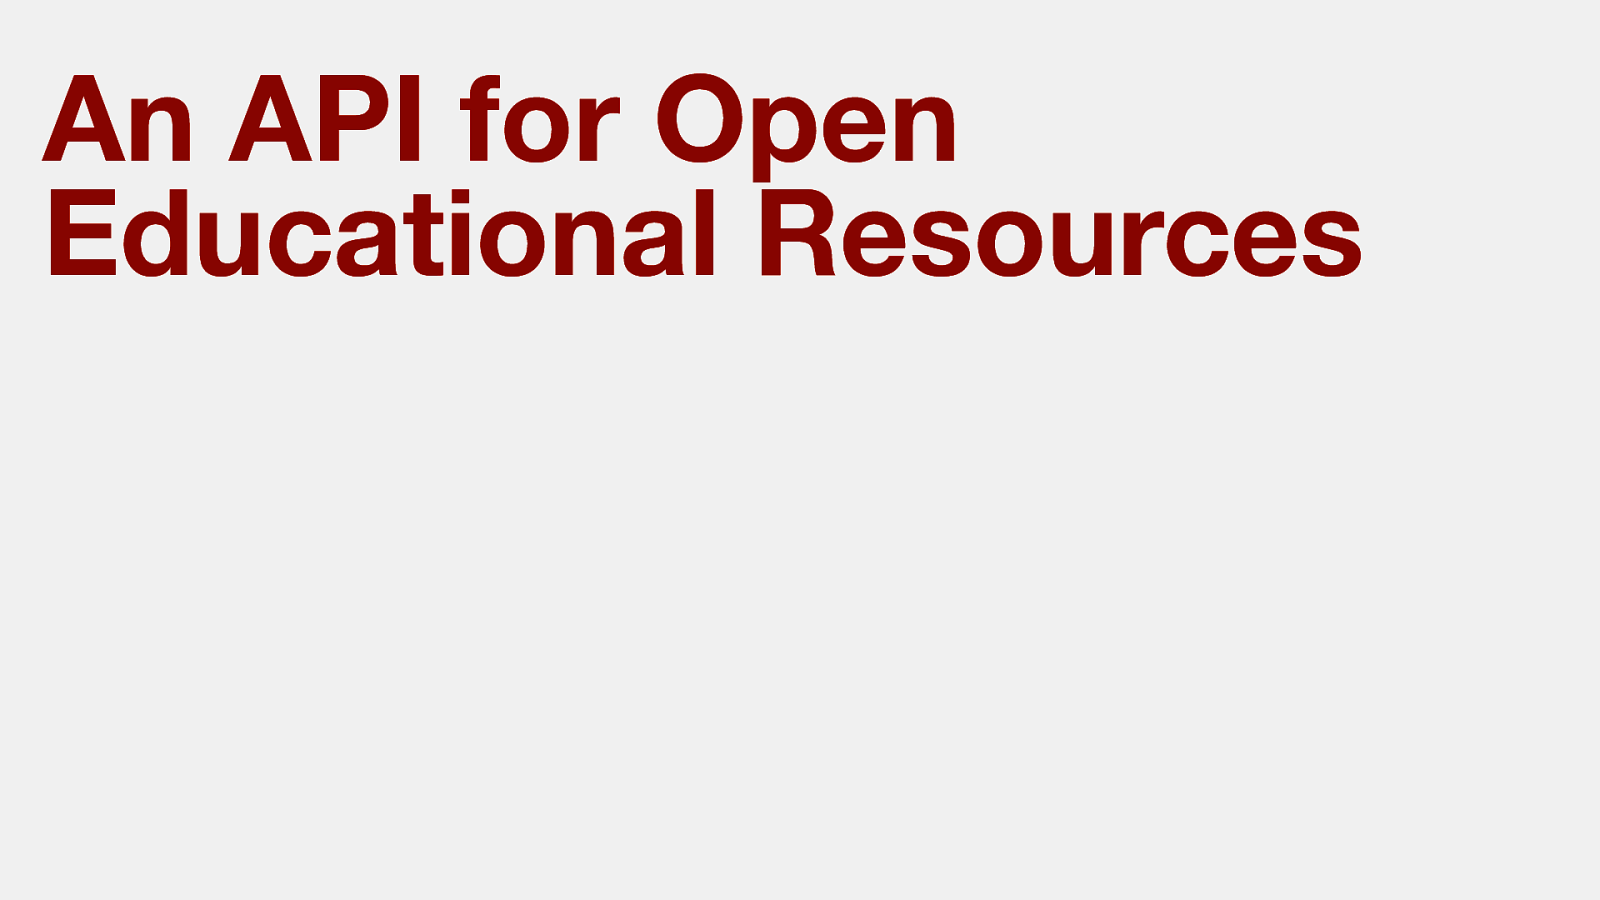 An API for open educational resources